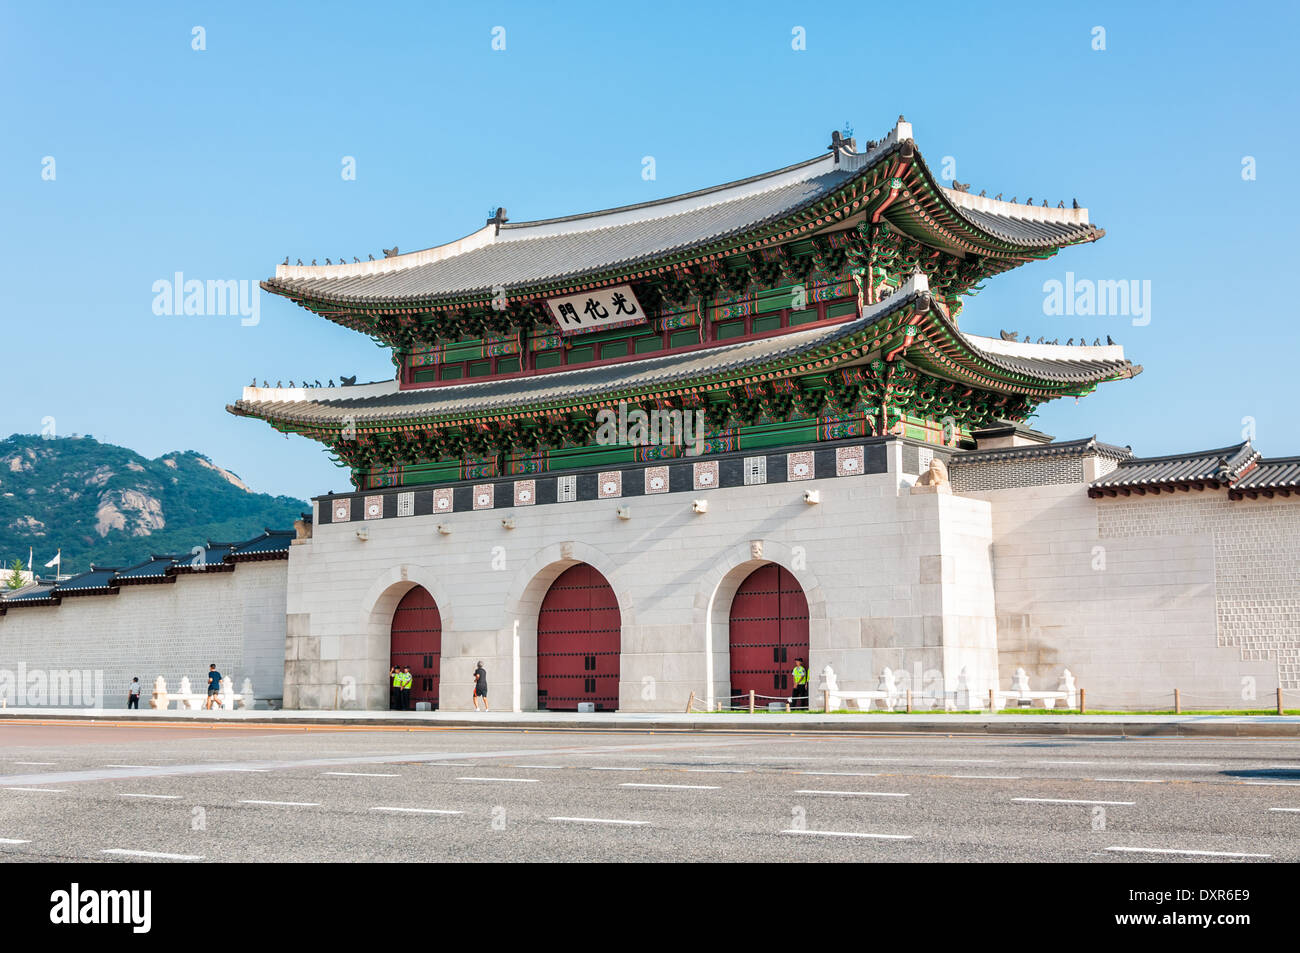 Traditional Korean Architecture At Gyeongbokgung Palace In Seoul South Korea